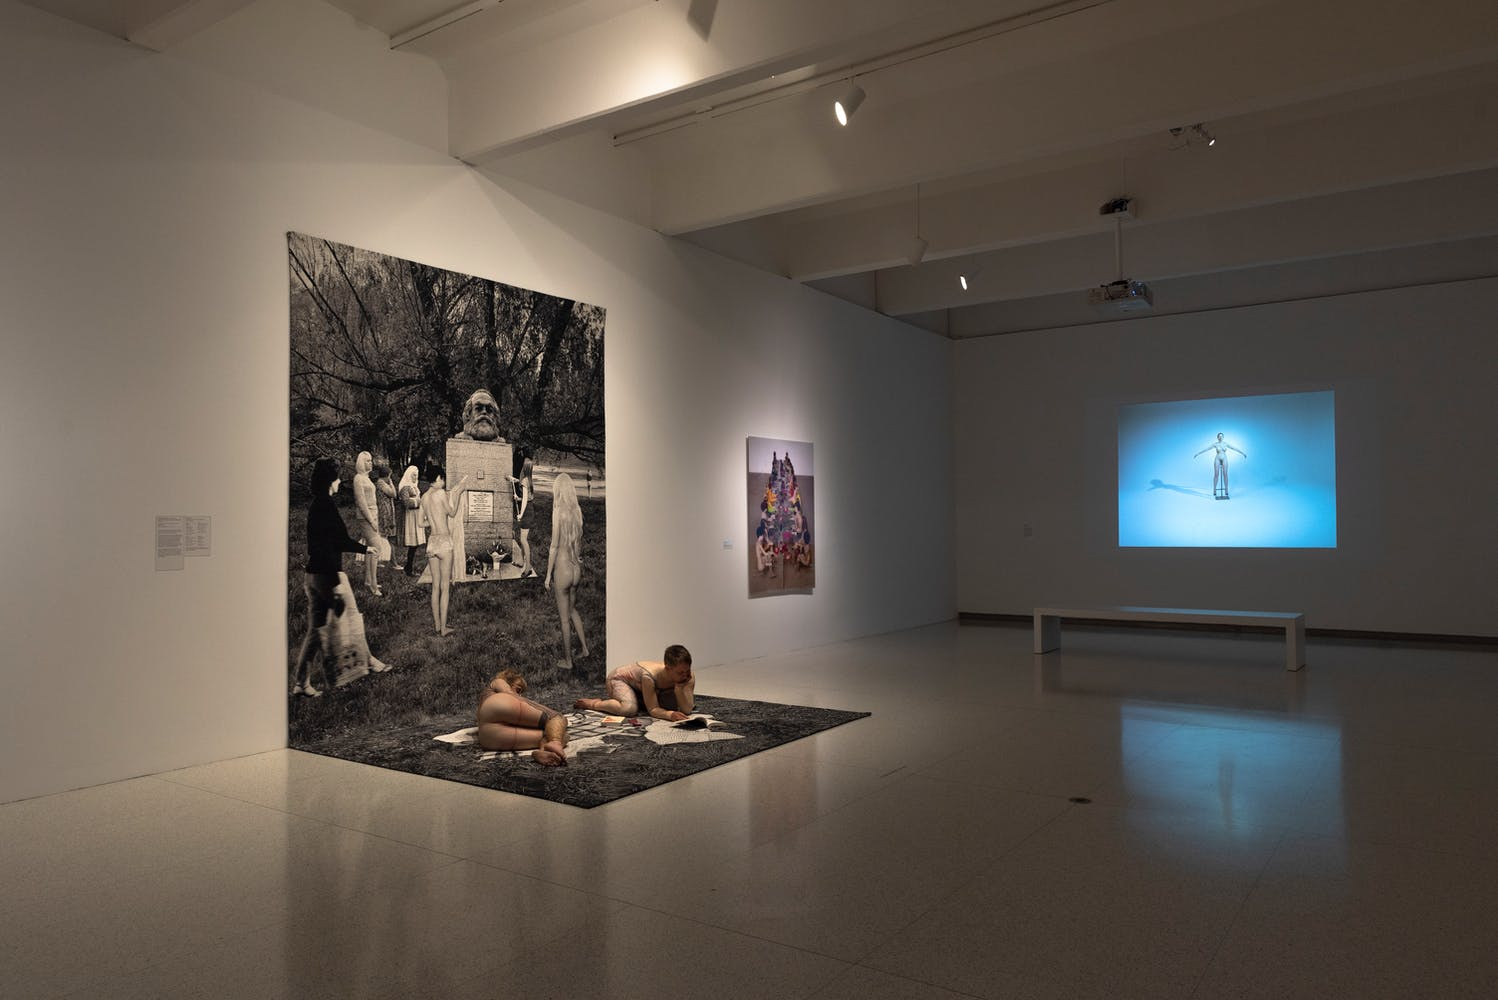 Gallery view of large print out with two performers lying on it and projection in the background